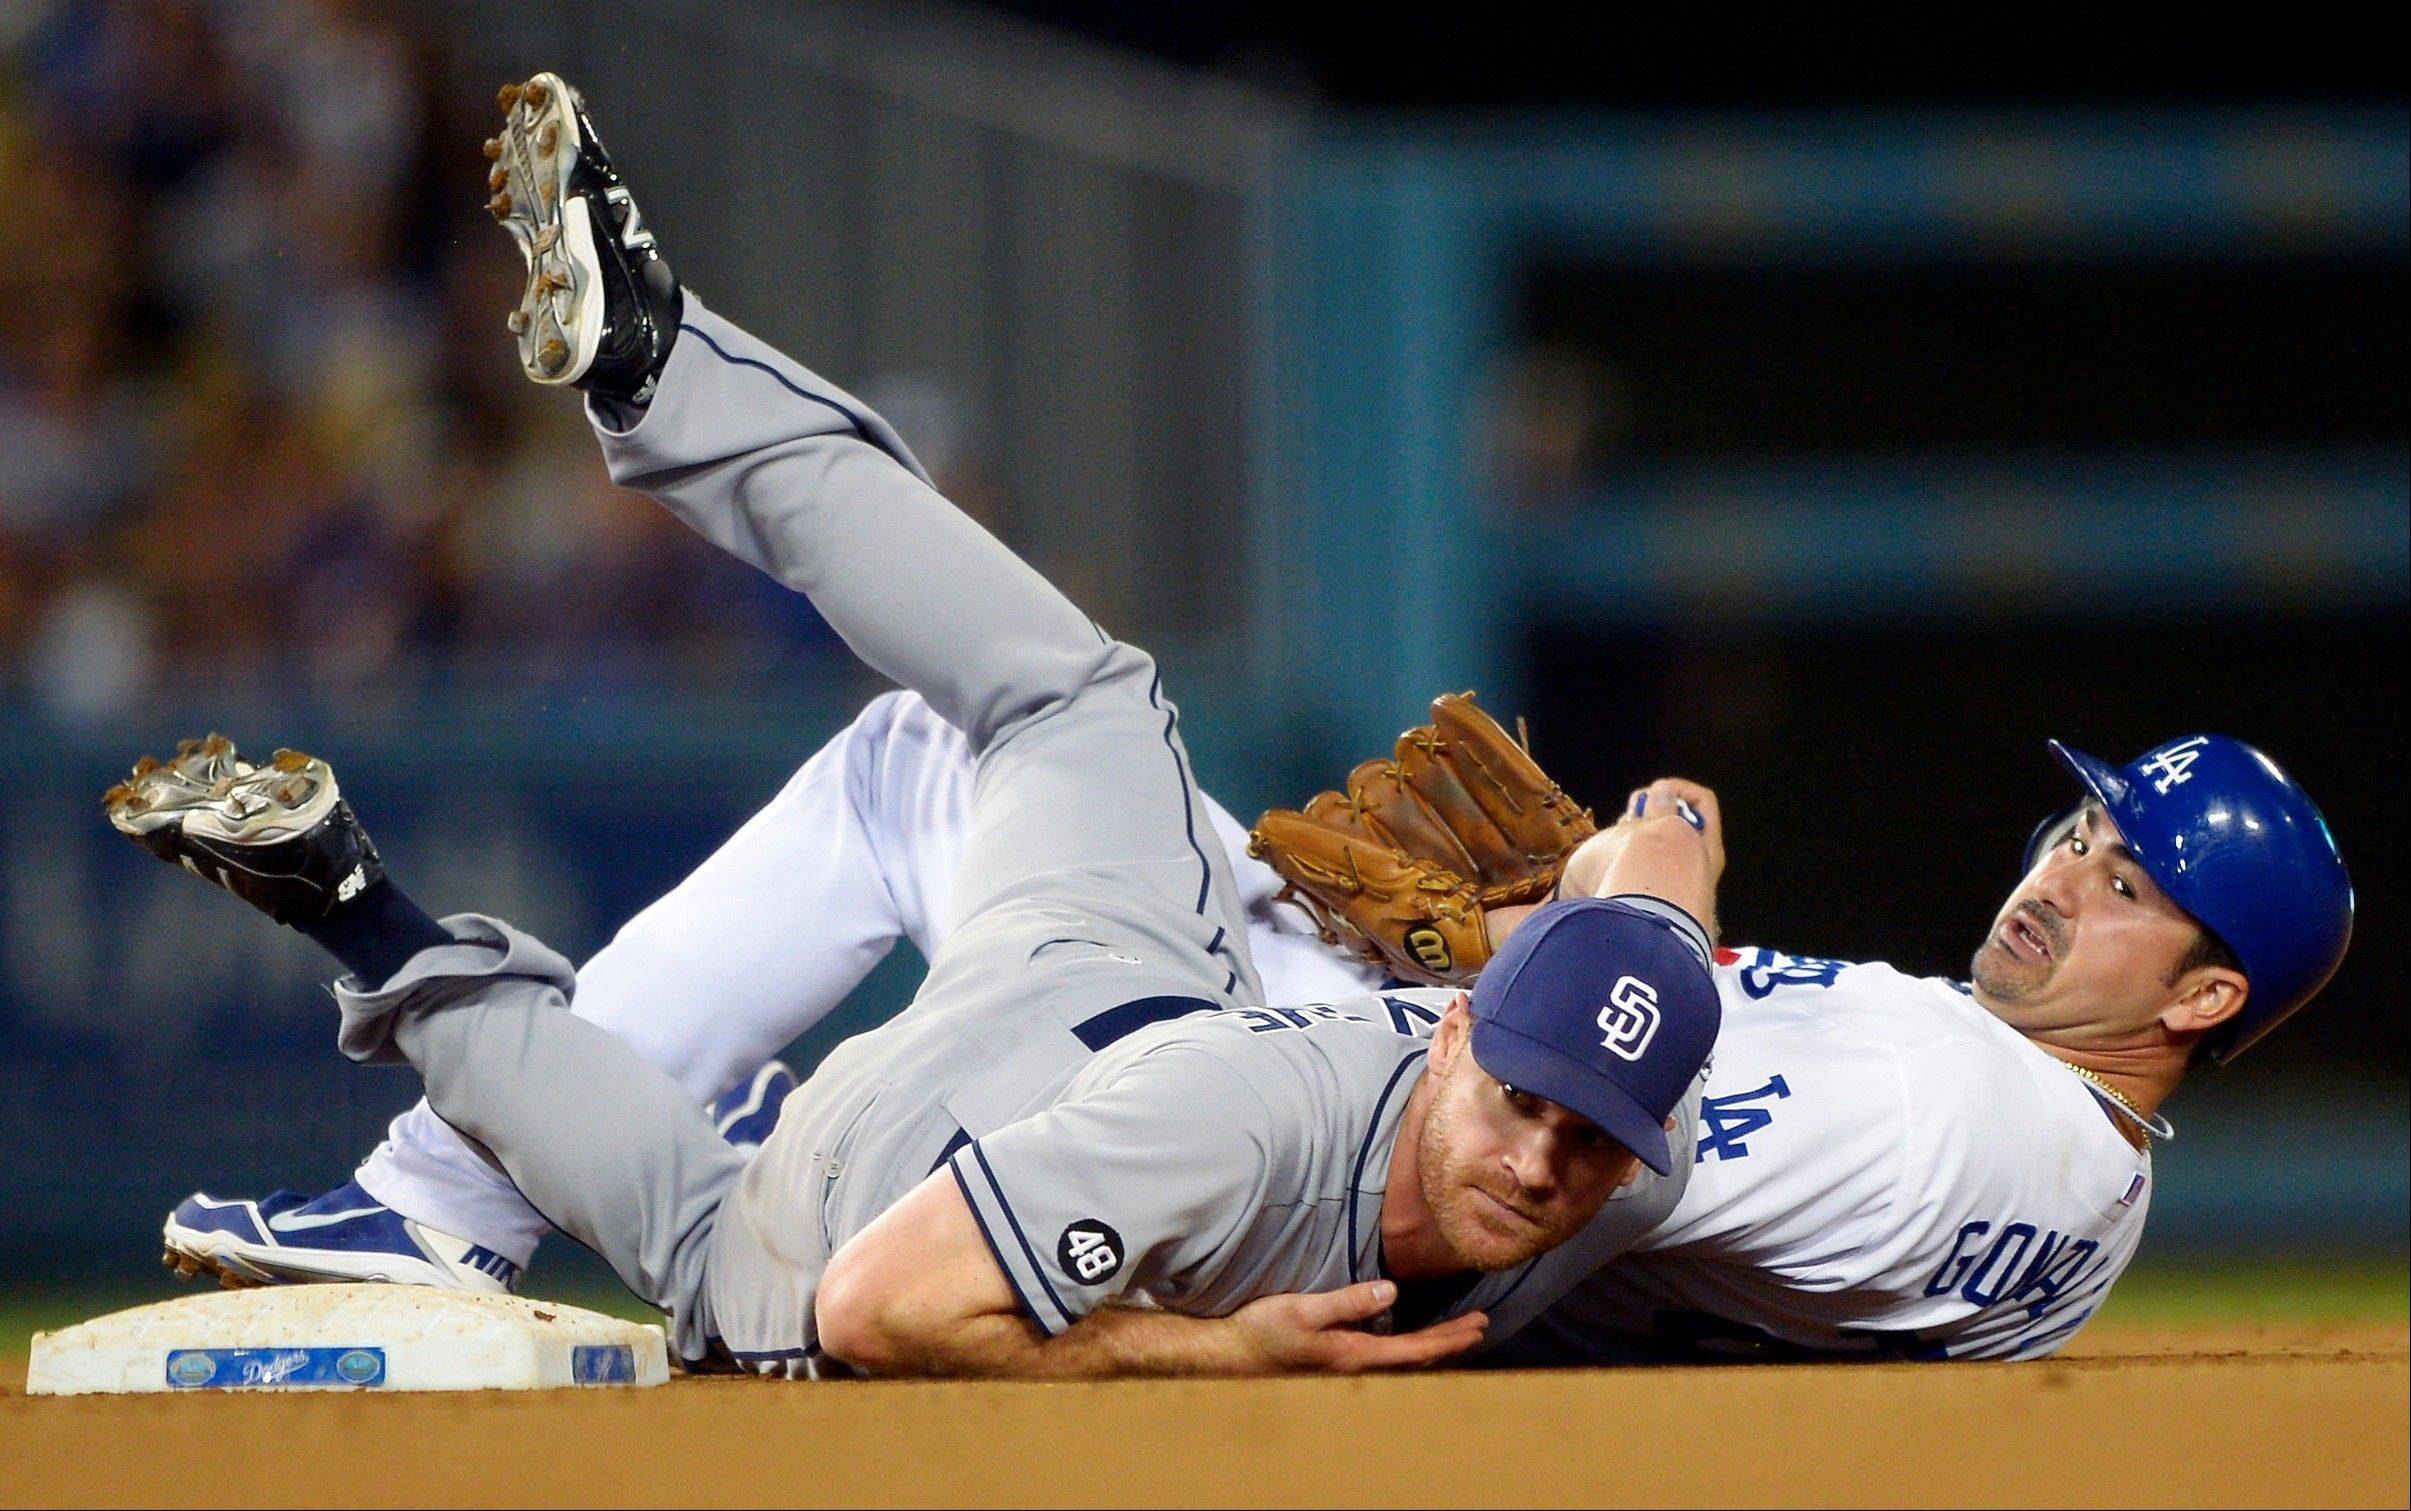 The Dodgers' Adrian Gonzalez, right, is forced out at second as San Diego Padres second baseman Logan Forsythe watches his throw to first during the fifth inning Wednesday in Los Angeles. Matt Kemp was safe at first.